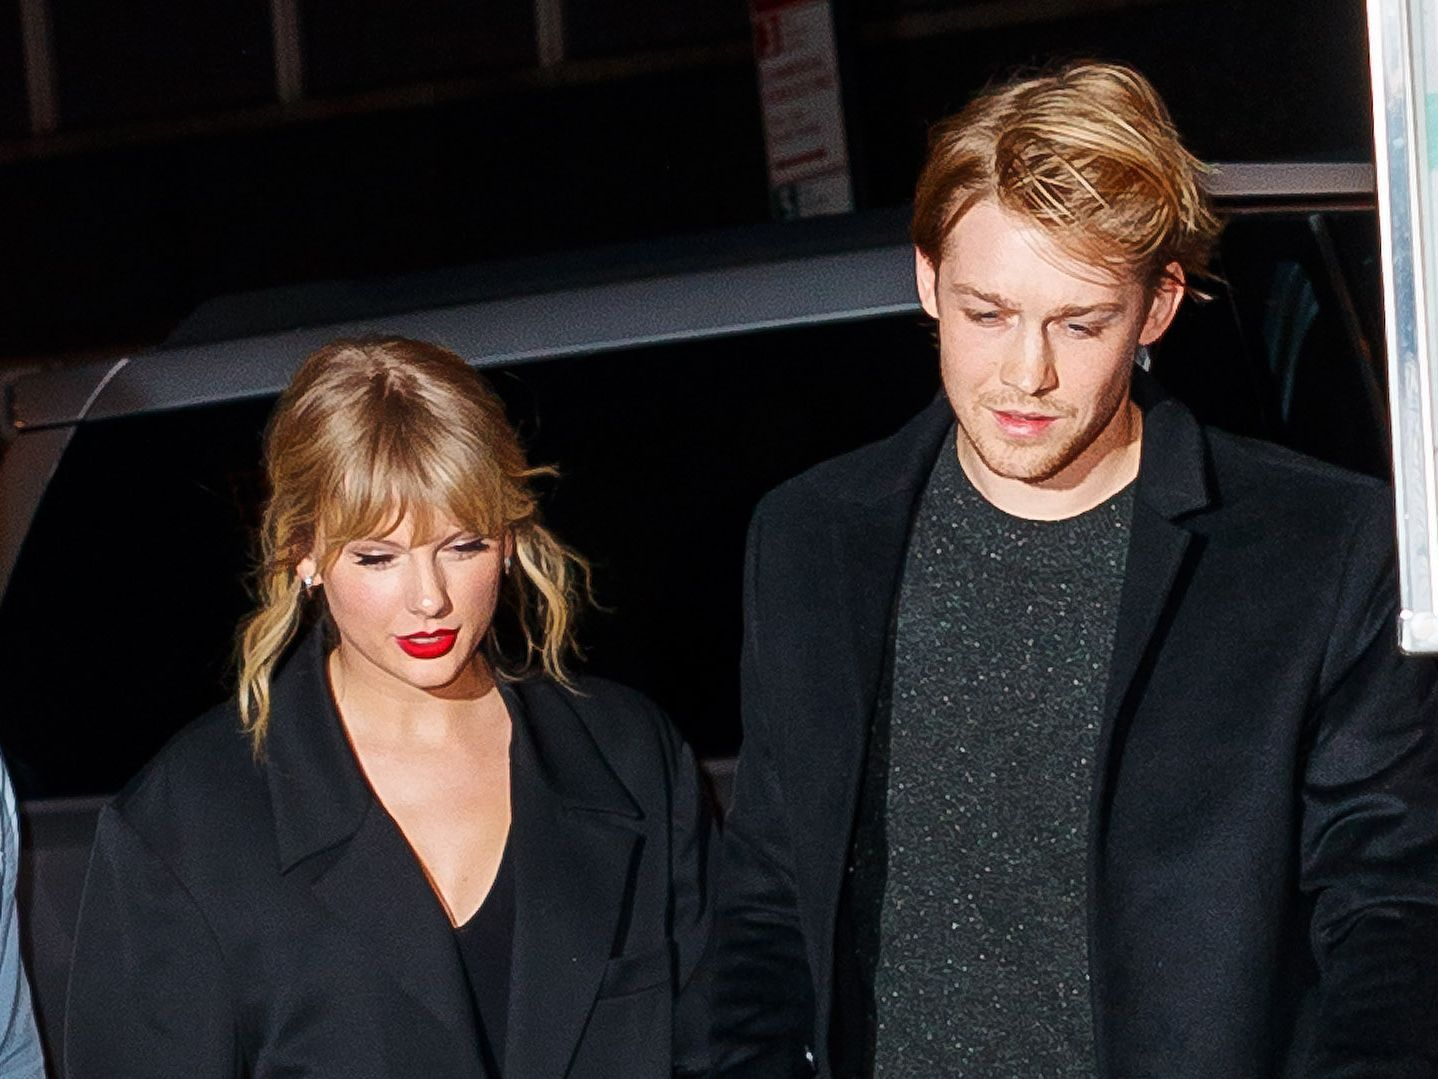 Taylor Swift And Joe Alwyn Enjoy A Very Public Date At The Golden Globes Mtv